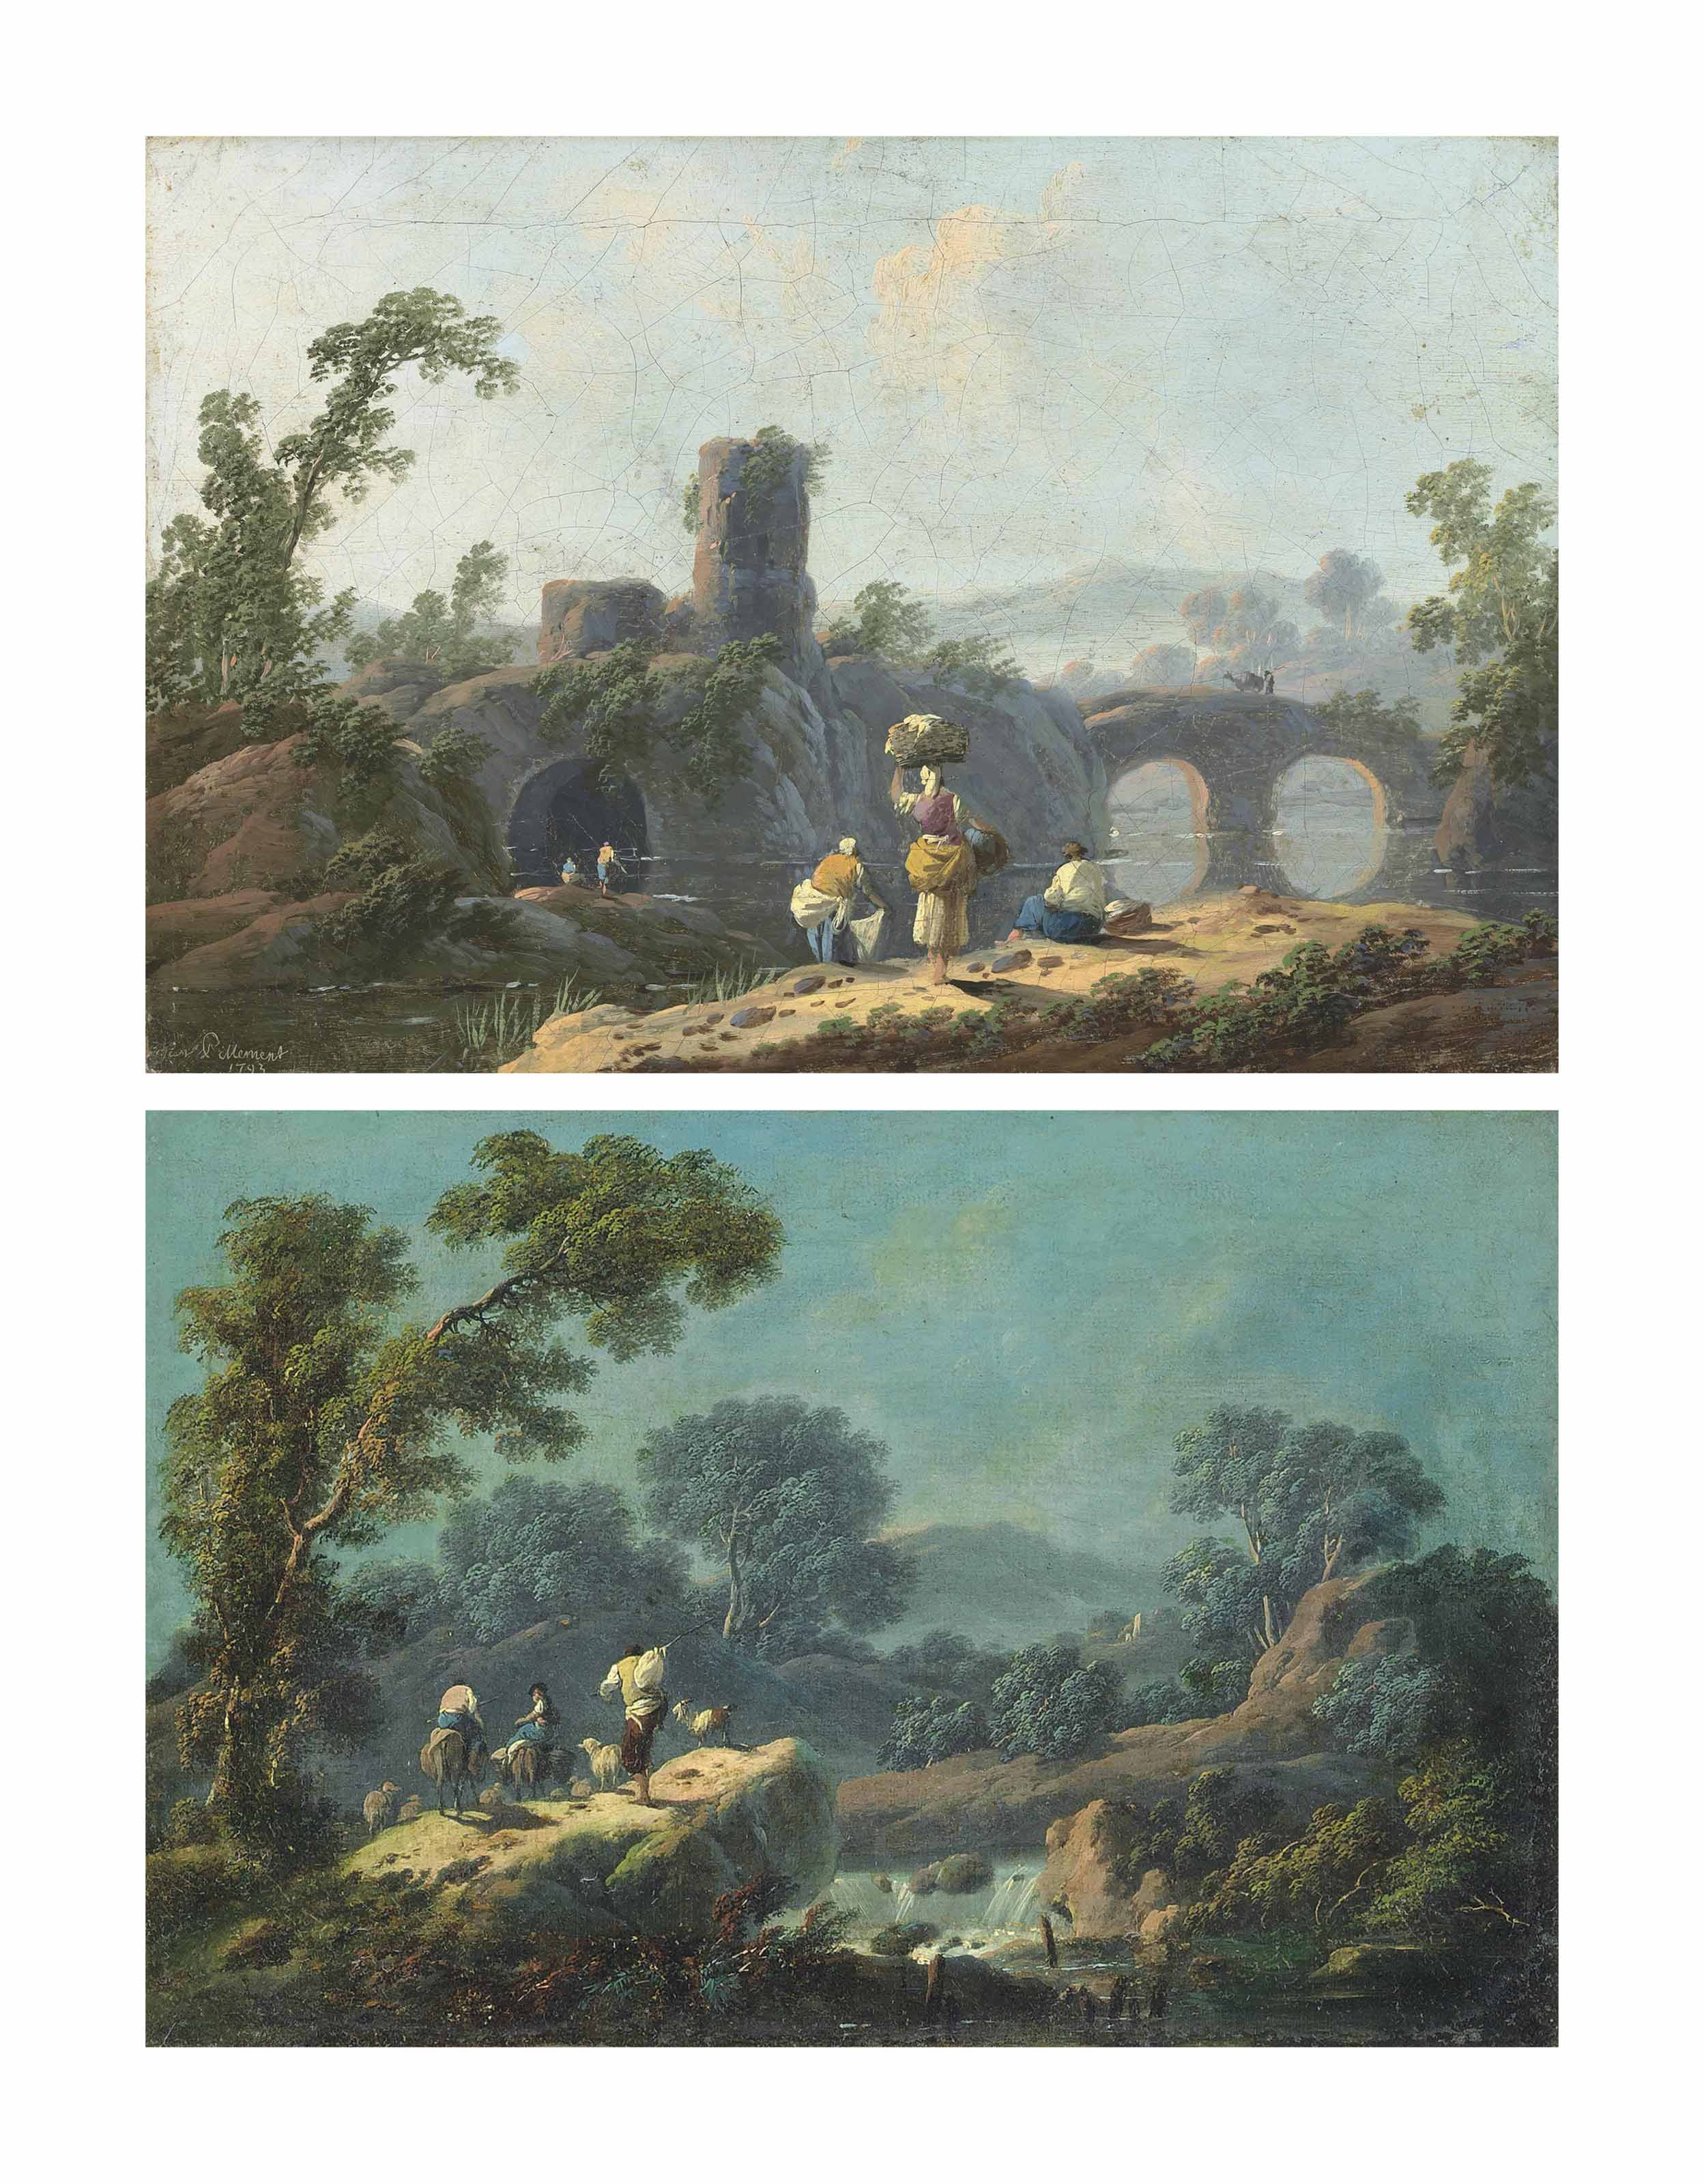 An Italianate landscape with washerwomen by a river, mountains beyond; and An Italianate wooded landscape at dusk, with herdsmen and their flock near a waterfall, mountains beyond